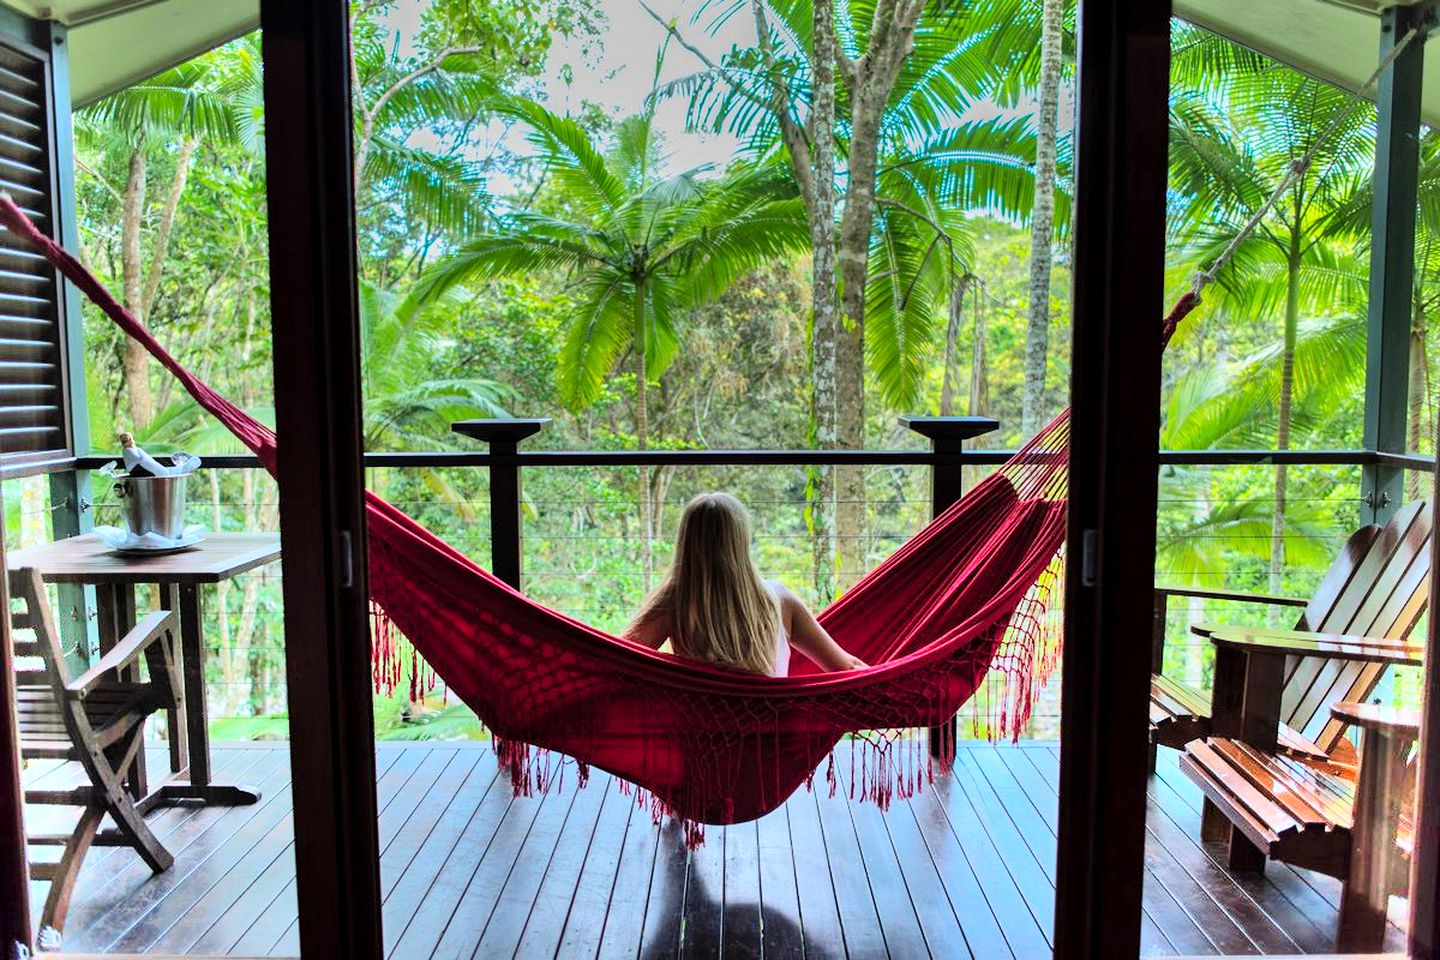 This retreat is ideal for romantic getaways in Queensland. Treehouses like this offer a truly peaceful retreat!